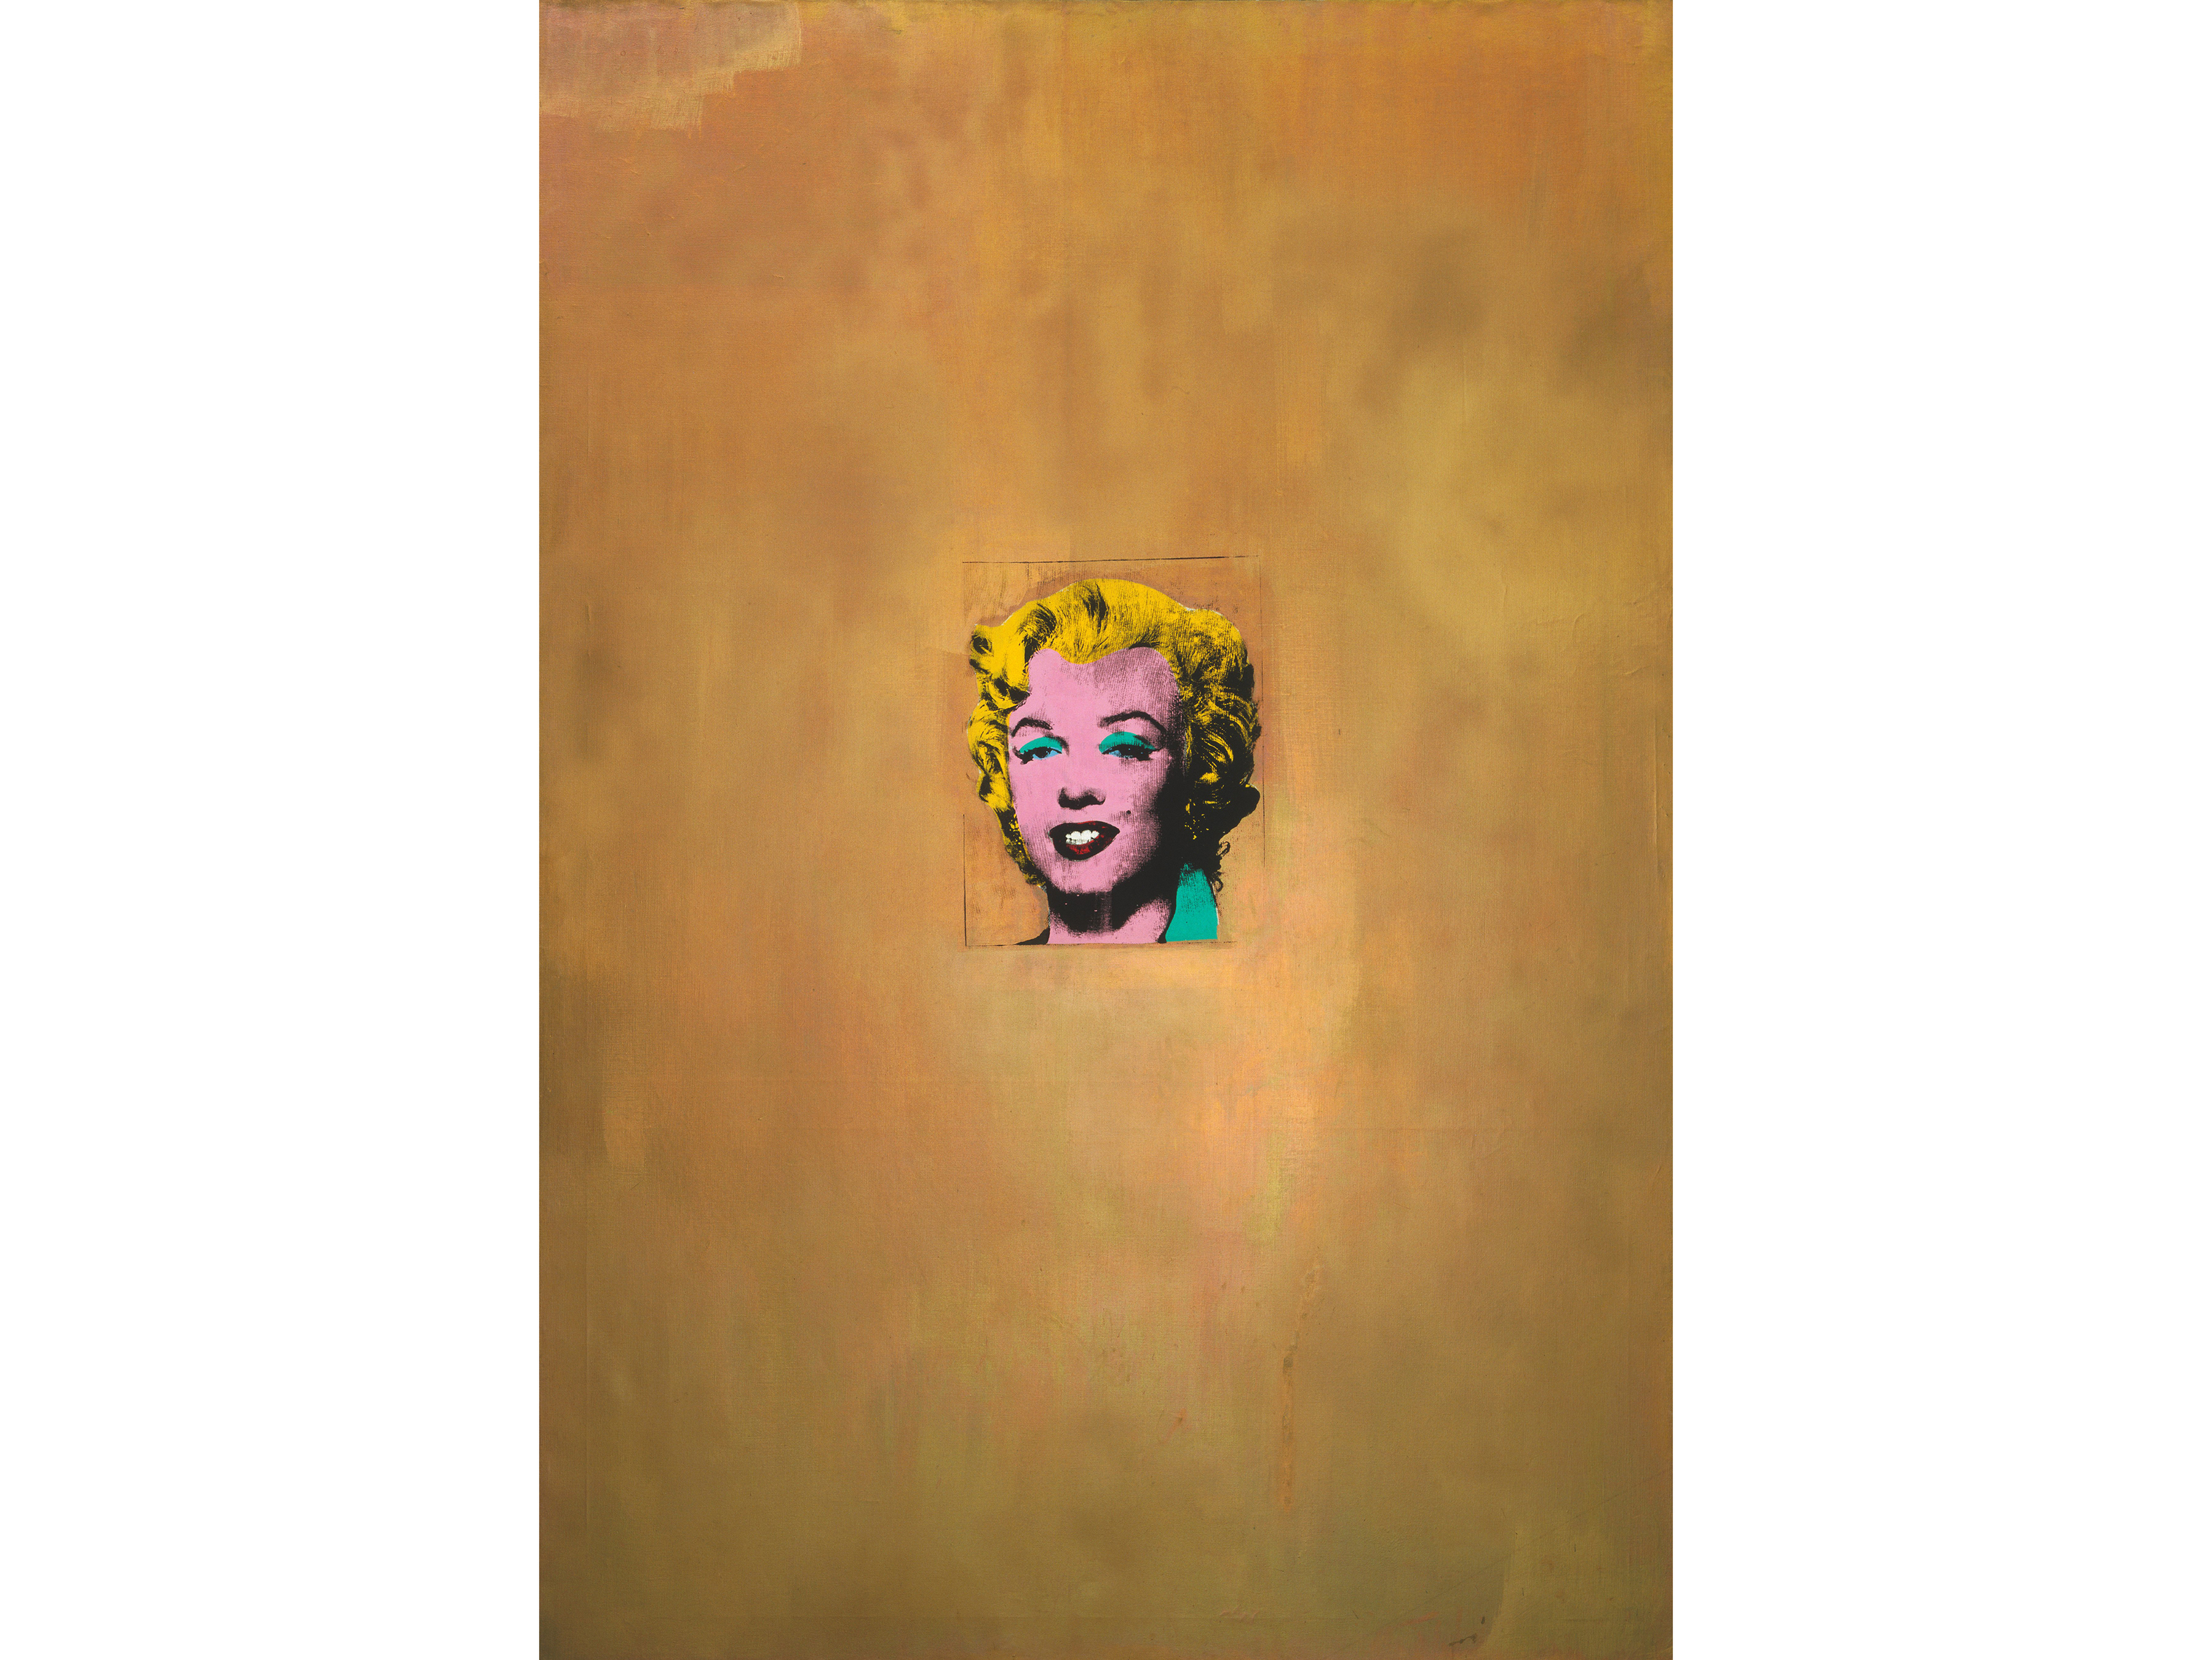 Gold Marilyn Monroe (1962), Andy Warhol